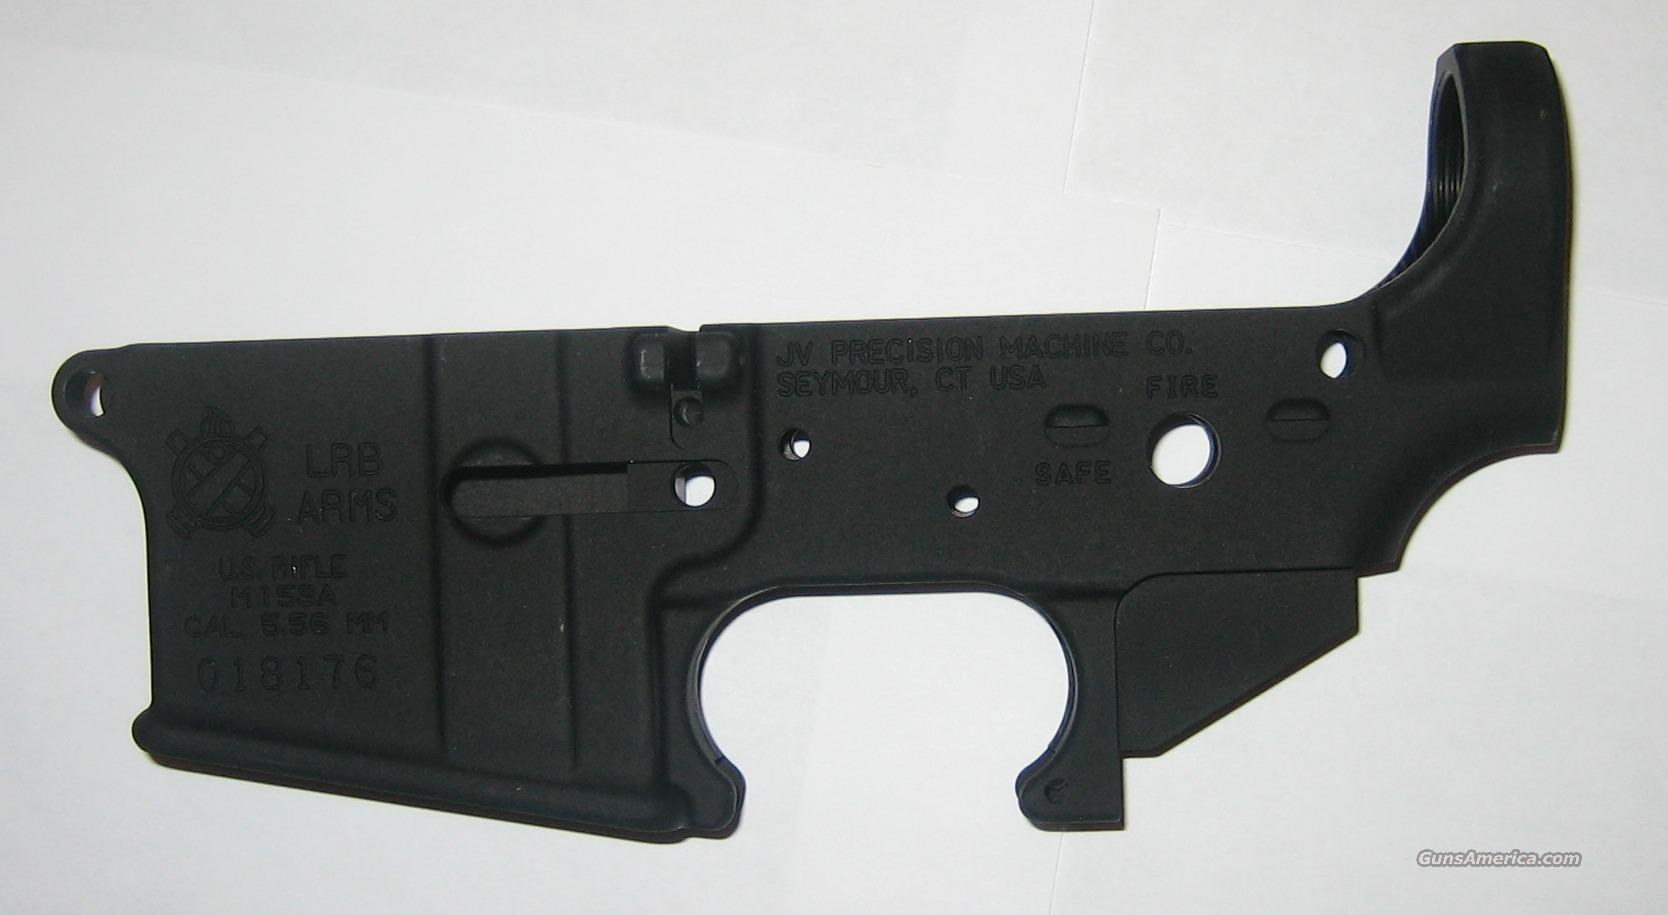 AR-15 new lower receiver by LRB Arms 5.56 .223  Guns > Rifles > AR-15 Rifles - Small Manufacturers > Lower Only